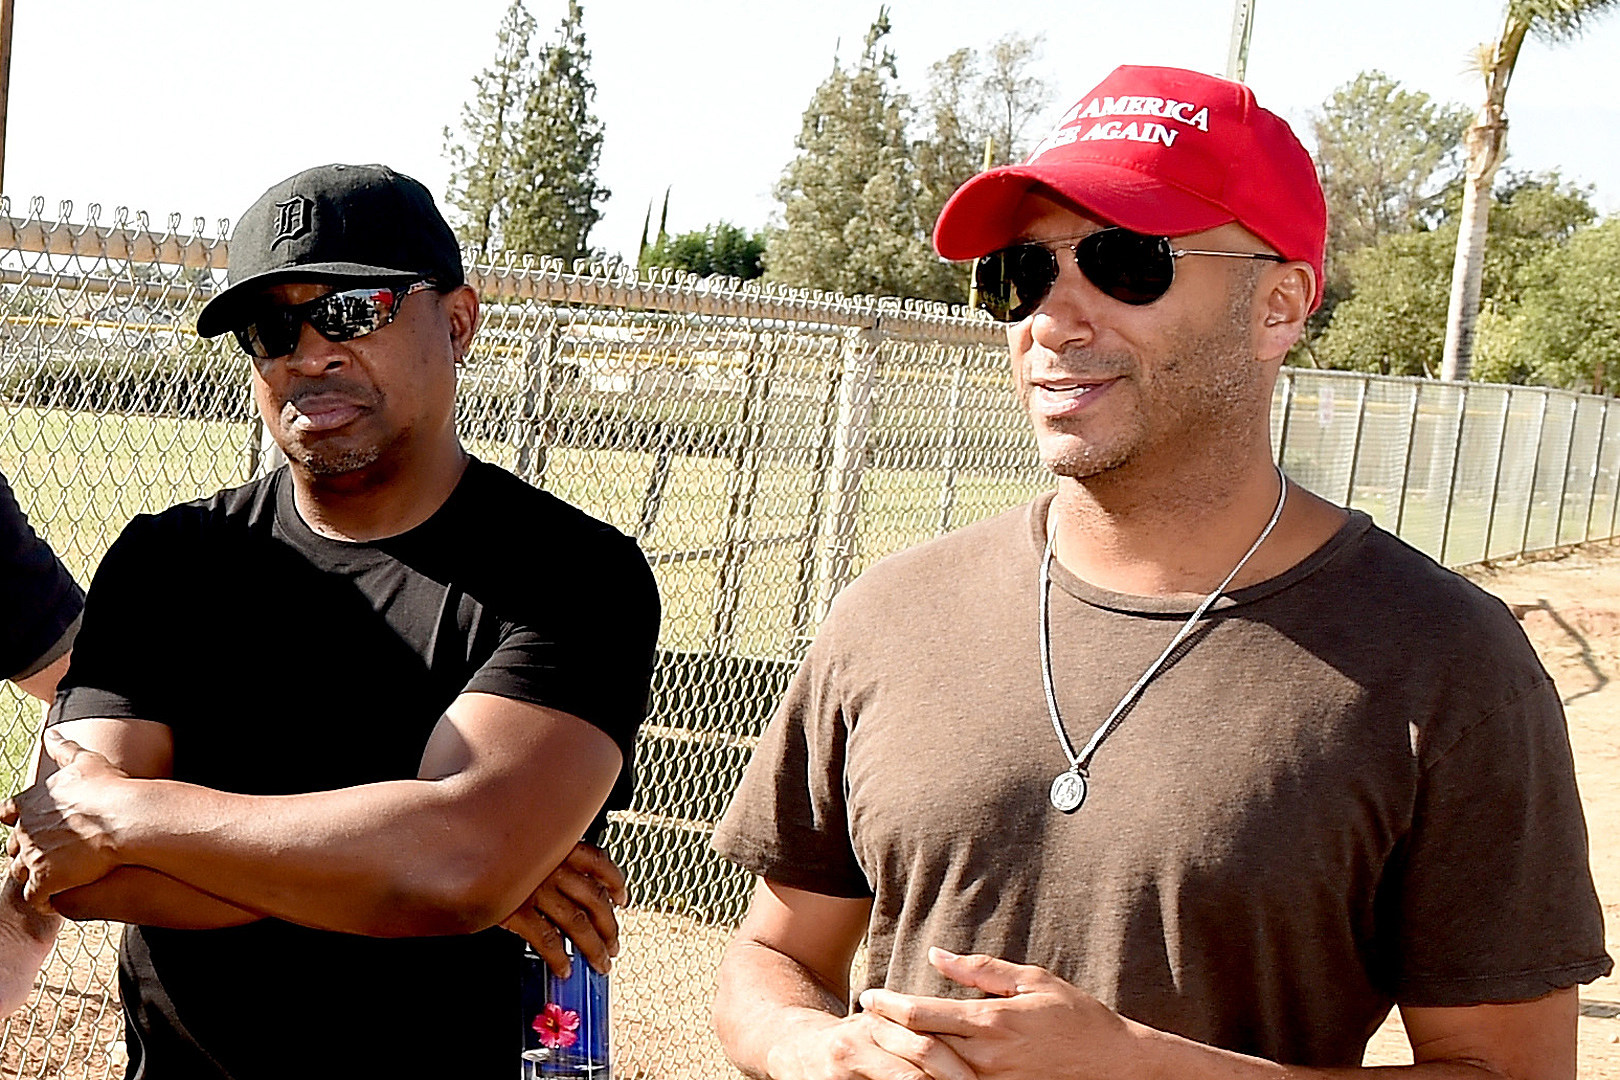 Prophets of Rage's Tom Morello: 'The Nazis and the KKK Have Unhooded Themselves'